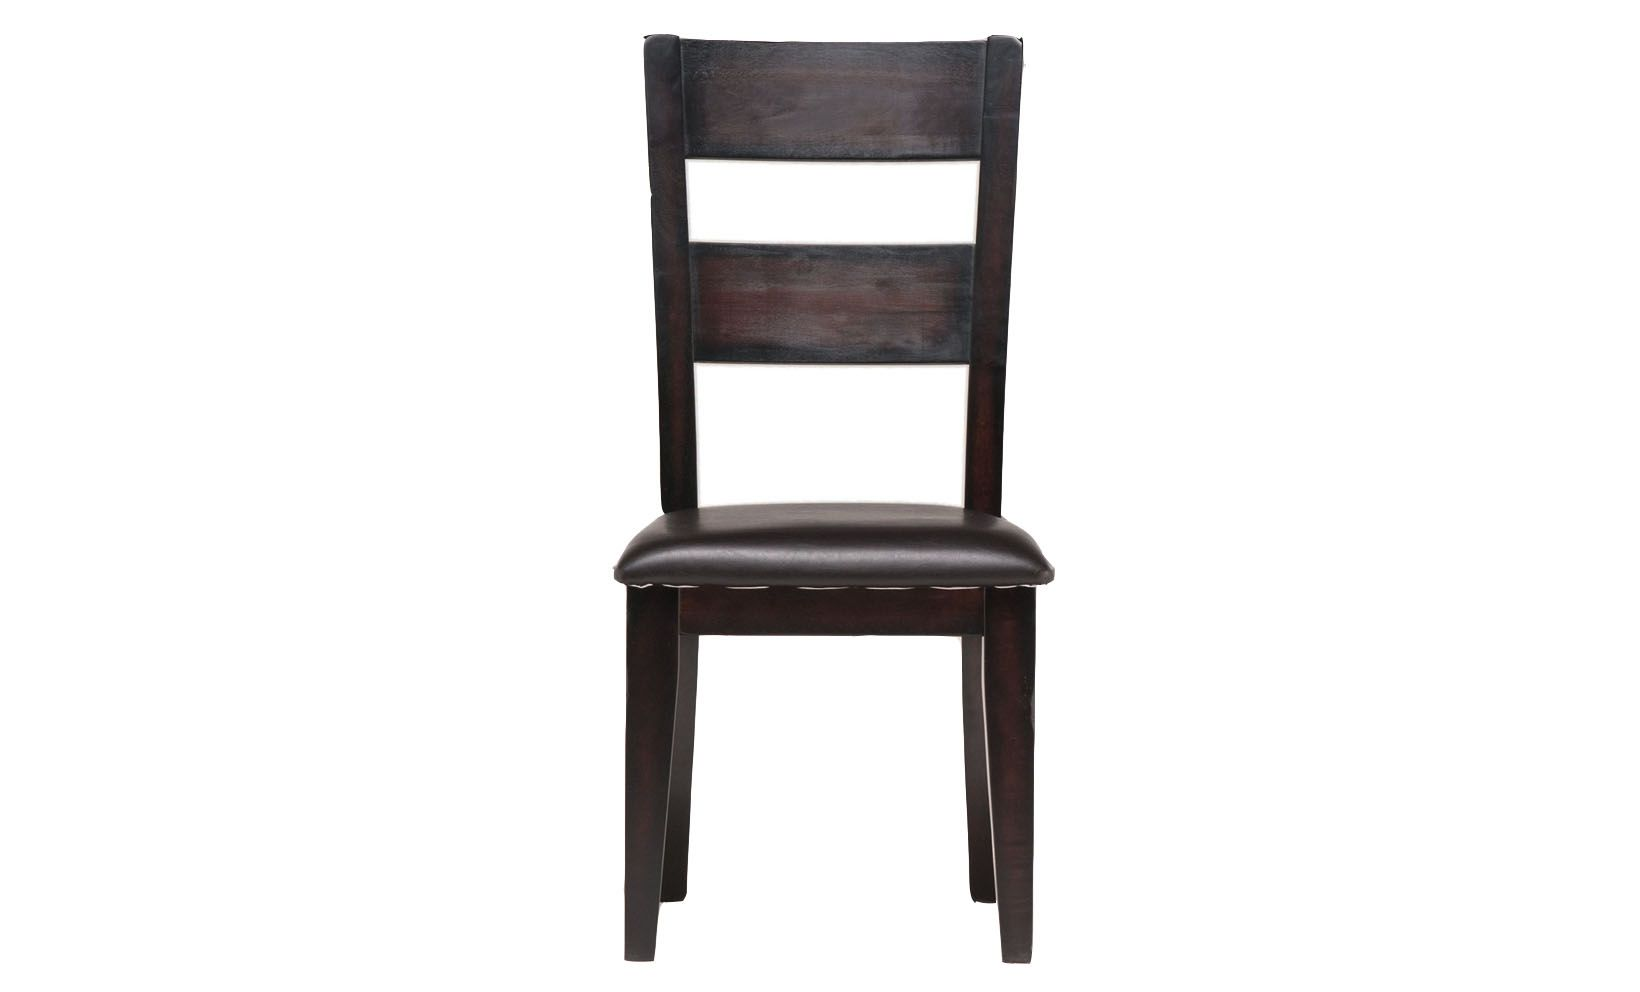 Rustic Prairie Side Chair (With images)  Side chairs, Rustic, Chair